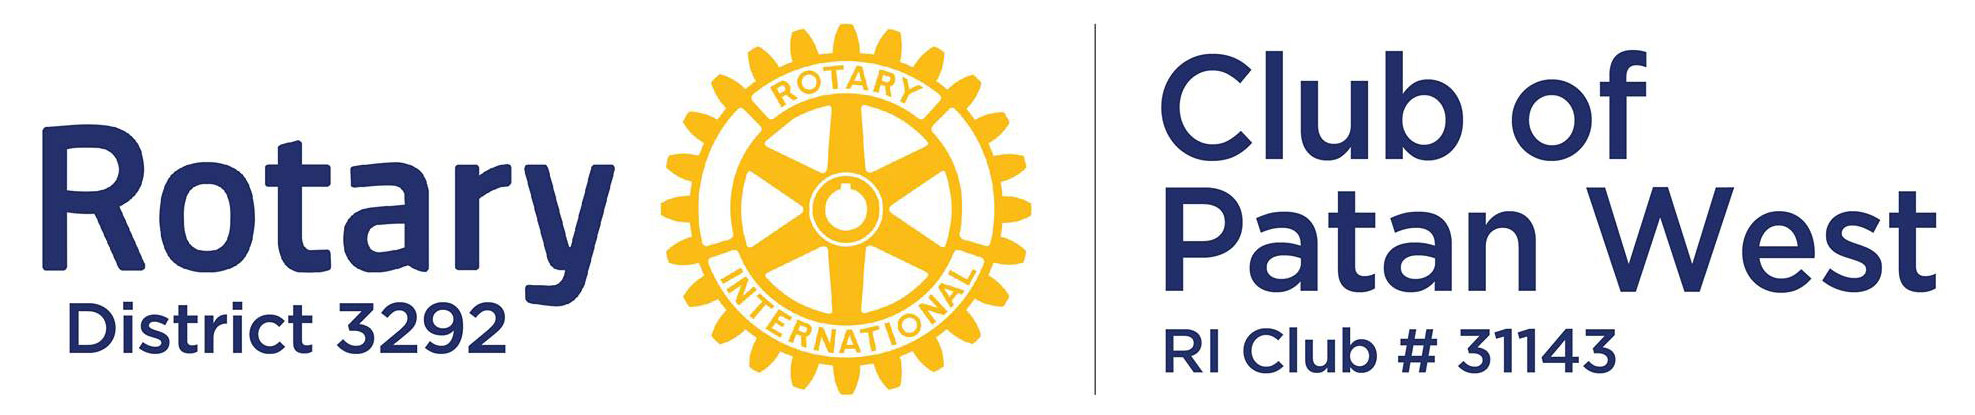 Rotary Club of Patan West